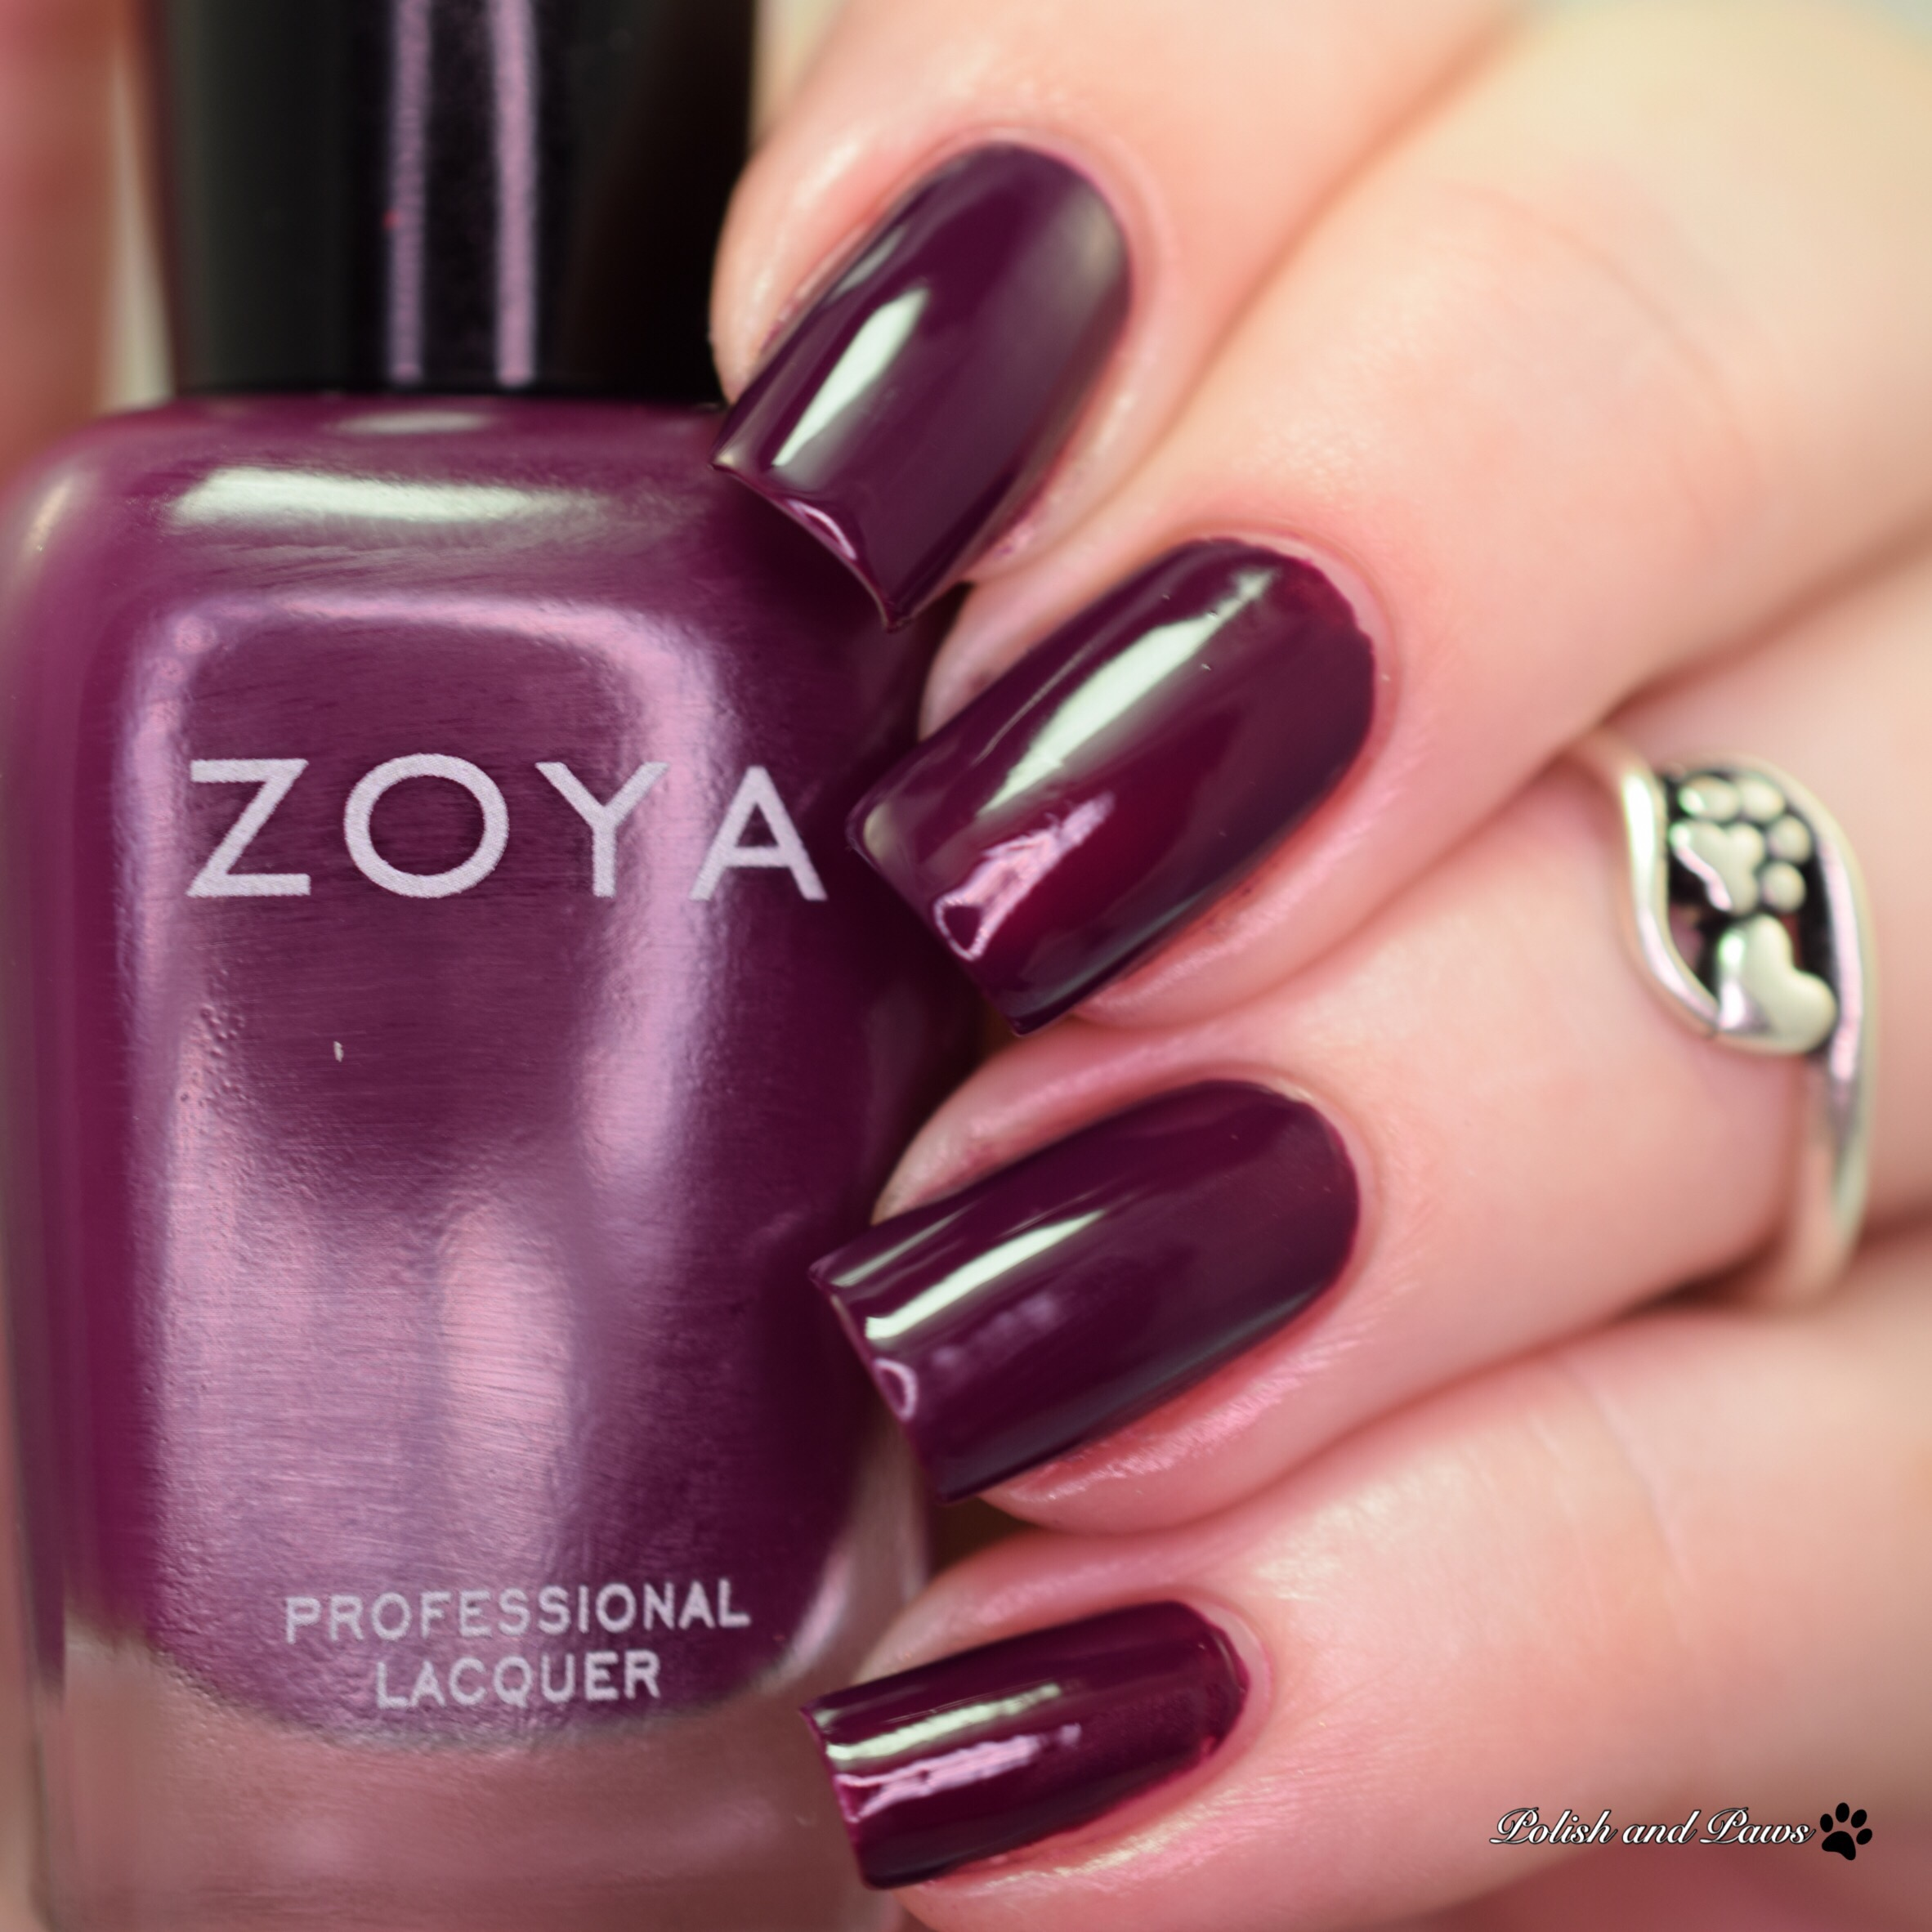 Top Nail Polish Colors For Fall 2016 - Printable Coloring Pages